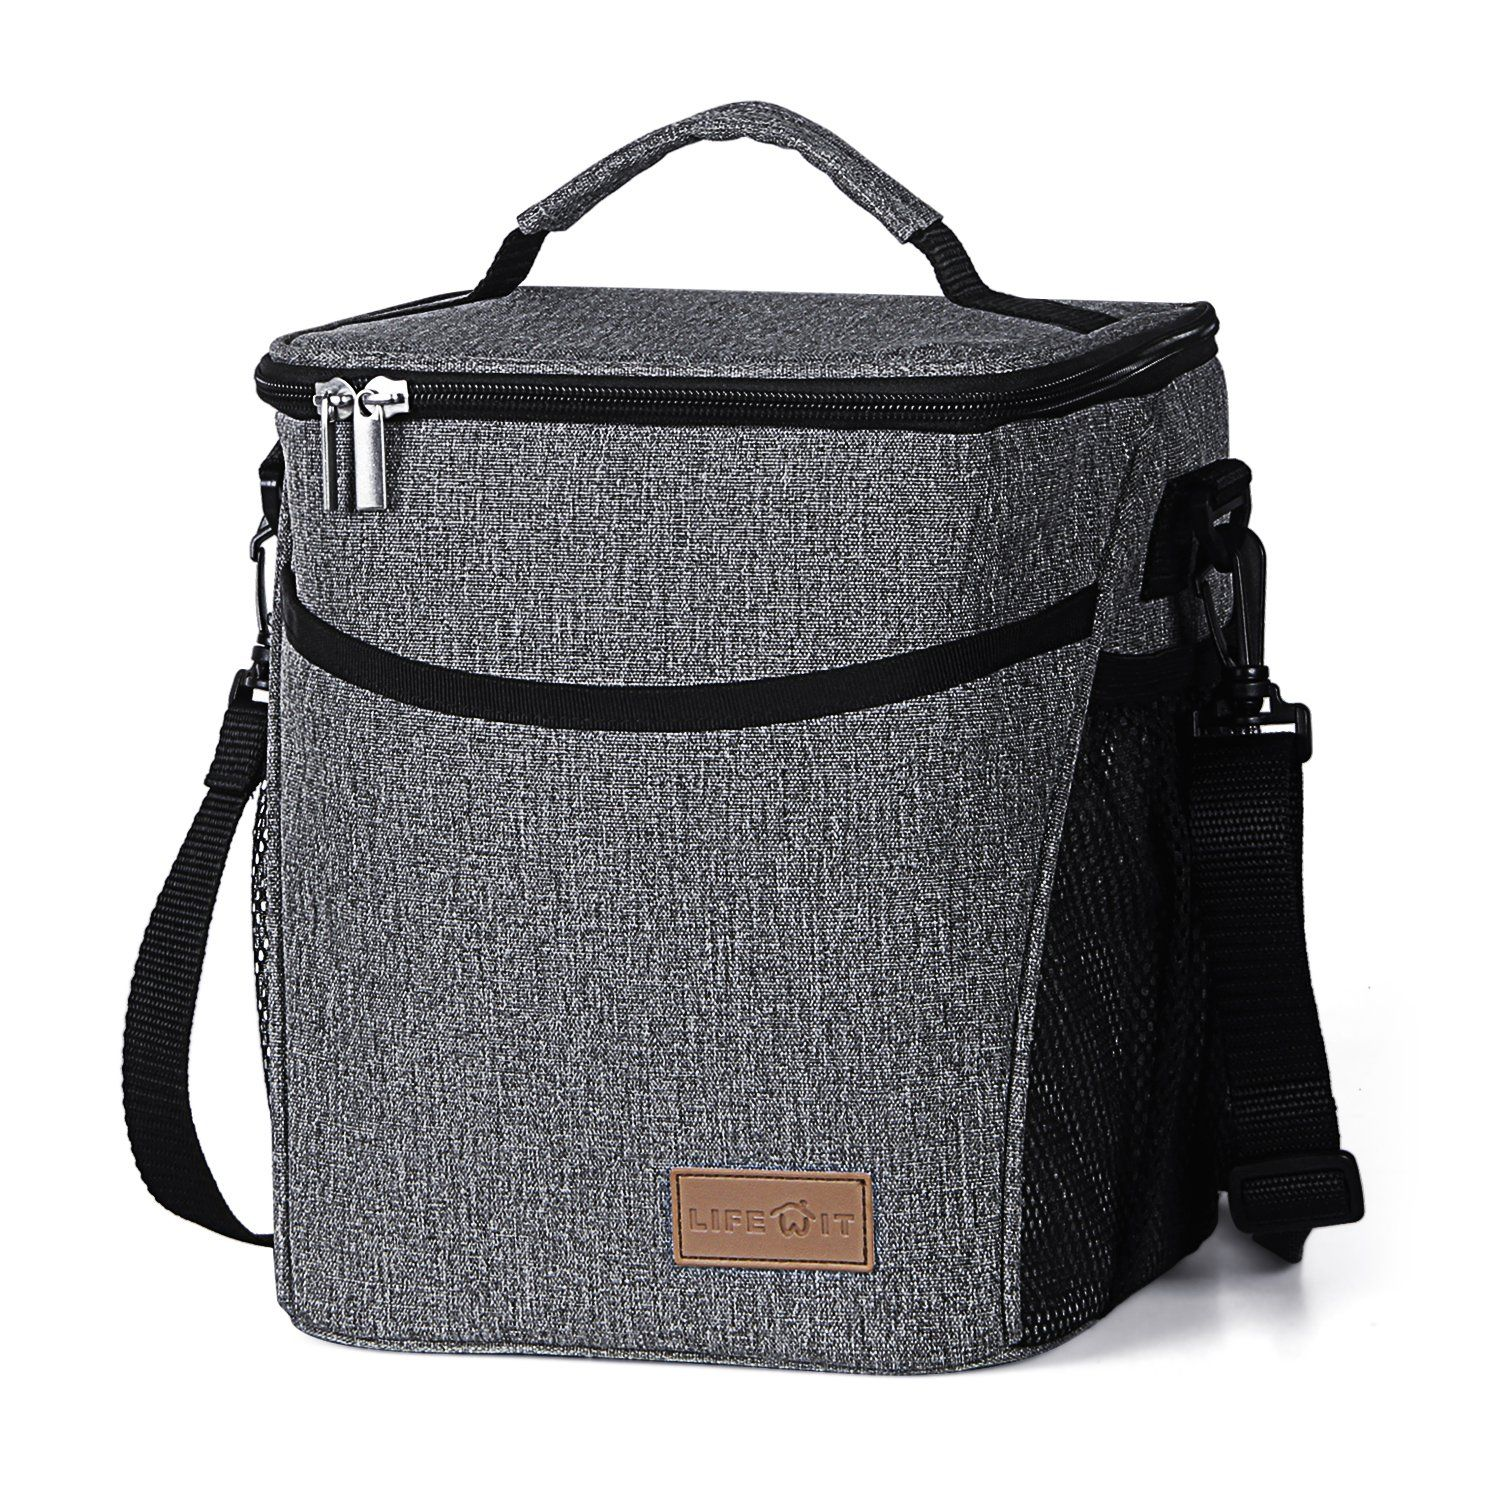 Lifewit Insulated Lunch Box for Men & Women & Kids, Thermal Bento Bag, Cooler Large Camping Box, Picnic Container with Adjustable Shoulder Strap, 9L, Grey